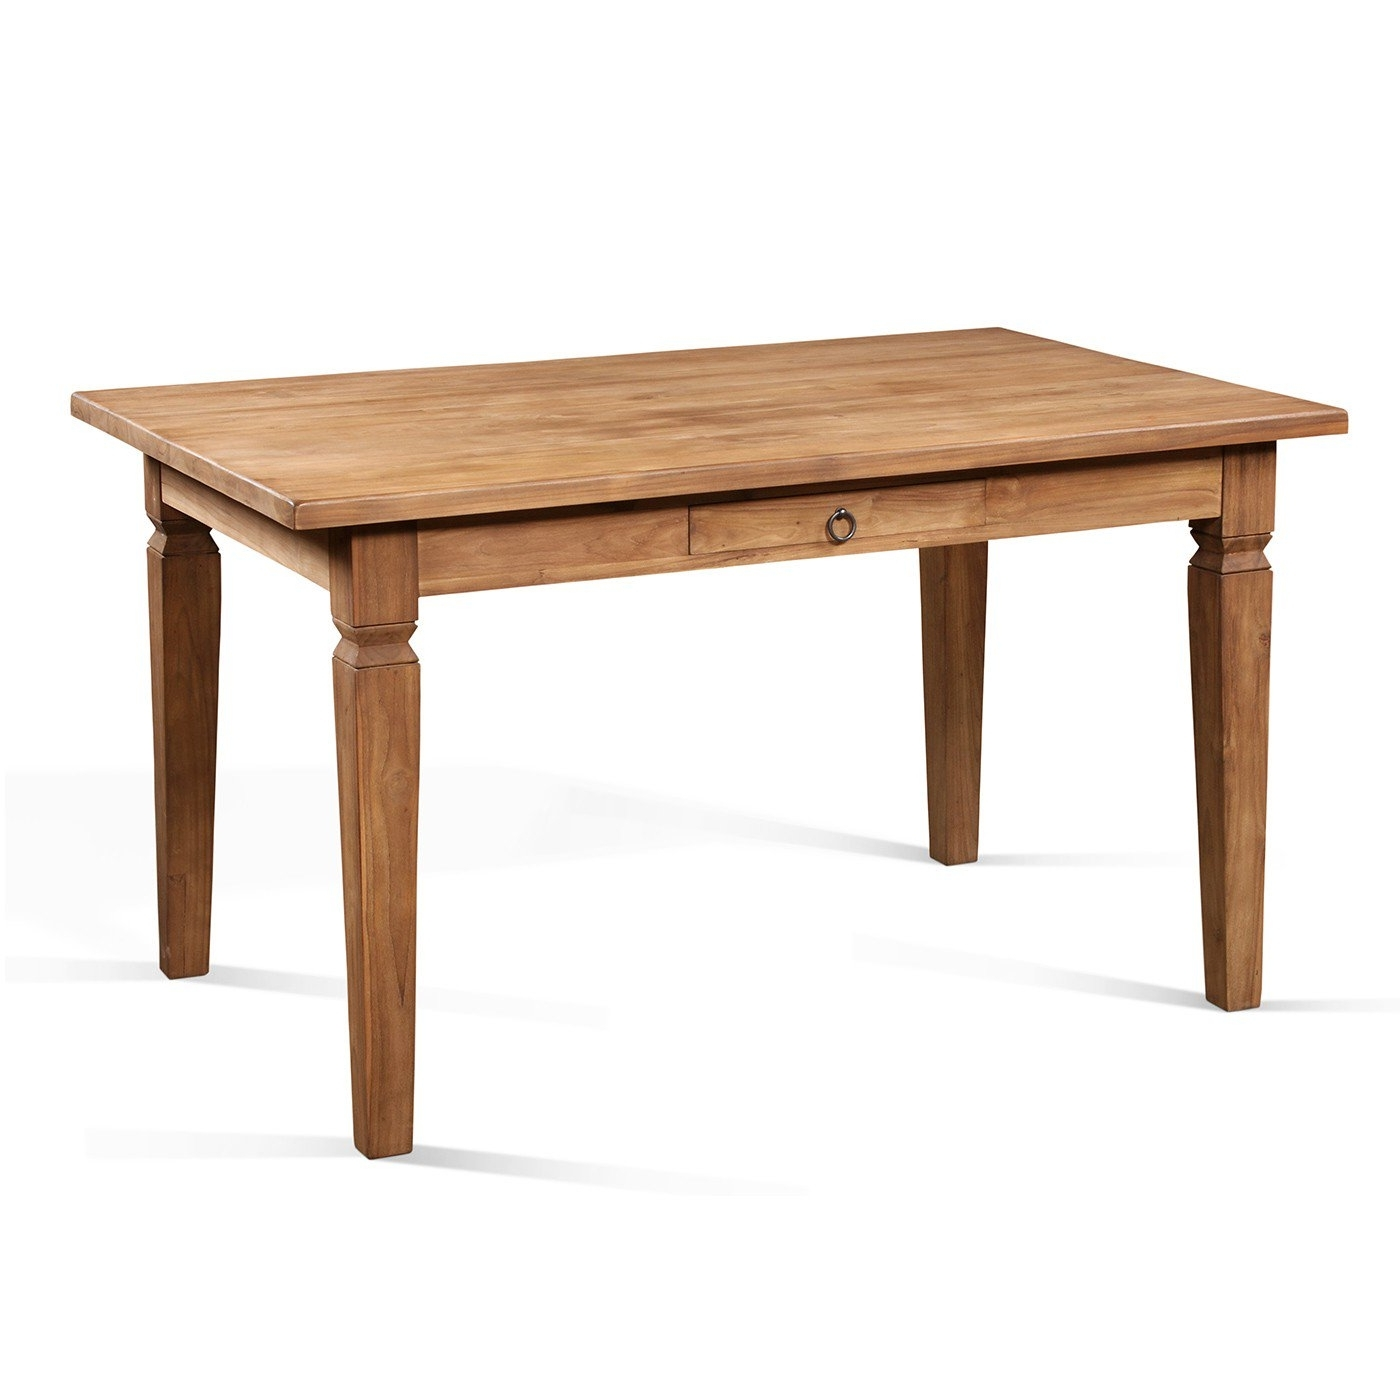 [%Classic Dining Table Natural Teak, 100% Reclaimed Teak – Raft Regarding 2018 London Dining Tables|London Dining Tables For Trendy Classic Dining Table Natural Teak, 100% Reclaimed Teak – Raft|2018 London Dining Tables Inside Classic Dining Table Natural Teak, 100% Reclaimed Teak – Raft|Most Recently Released Classic Dining Table Natural Teak, 100% Reclaimed Teak – Raft In London Dining Tables%] (View 1 of 25)